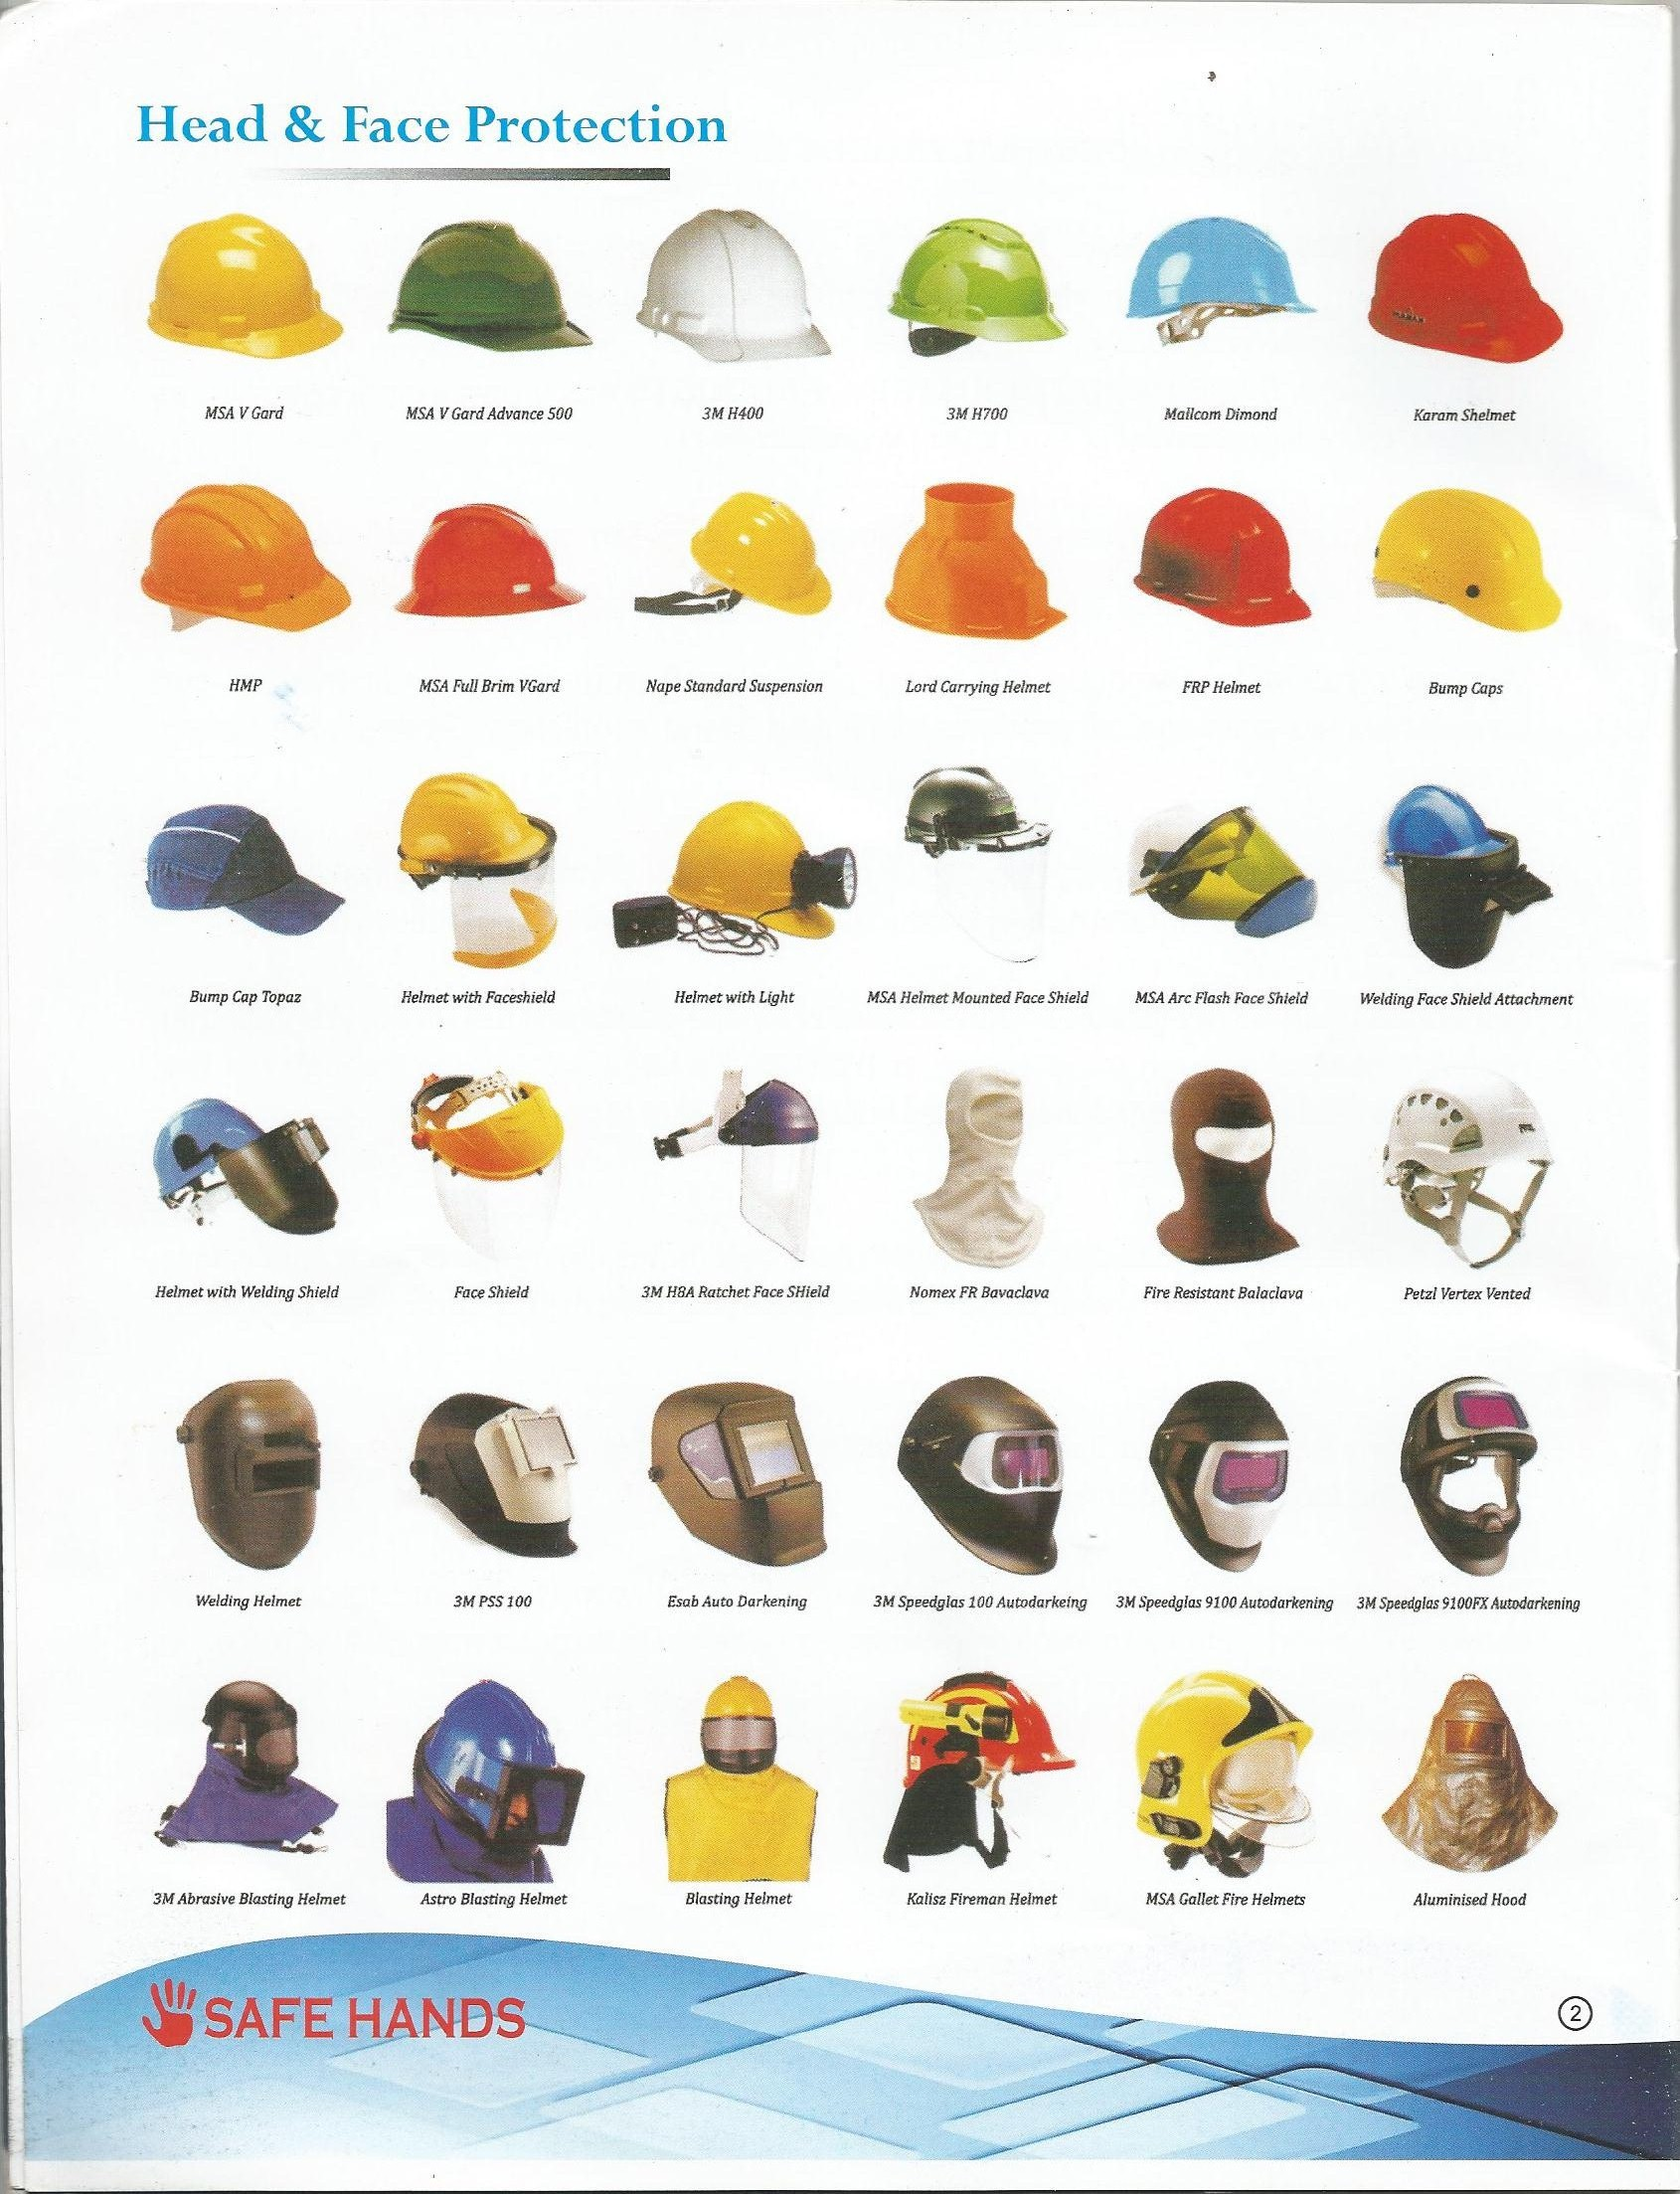 SAFETY HELMET MANUFACTURER IN BANGALORE SAFETY HELMET WITH PVC MATERIAL WITH BREAK PROOF WITH PLASTIC NOBE SPECIFICATION WHICH HELPS IN FIX TO THE CORRECT POSITION OF THE HEAD